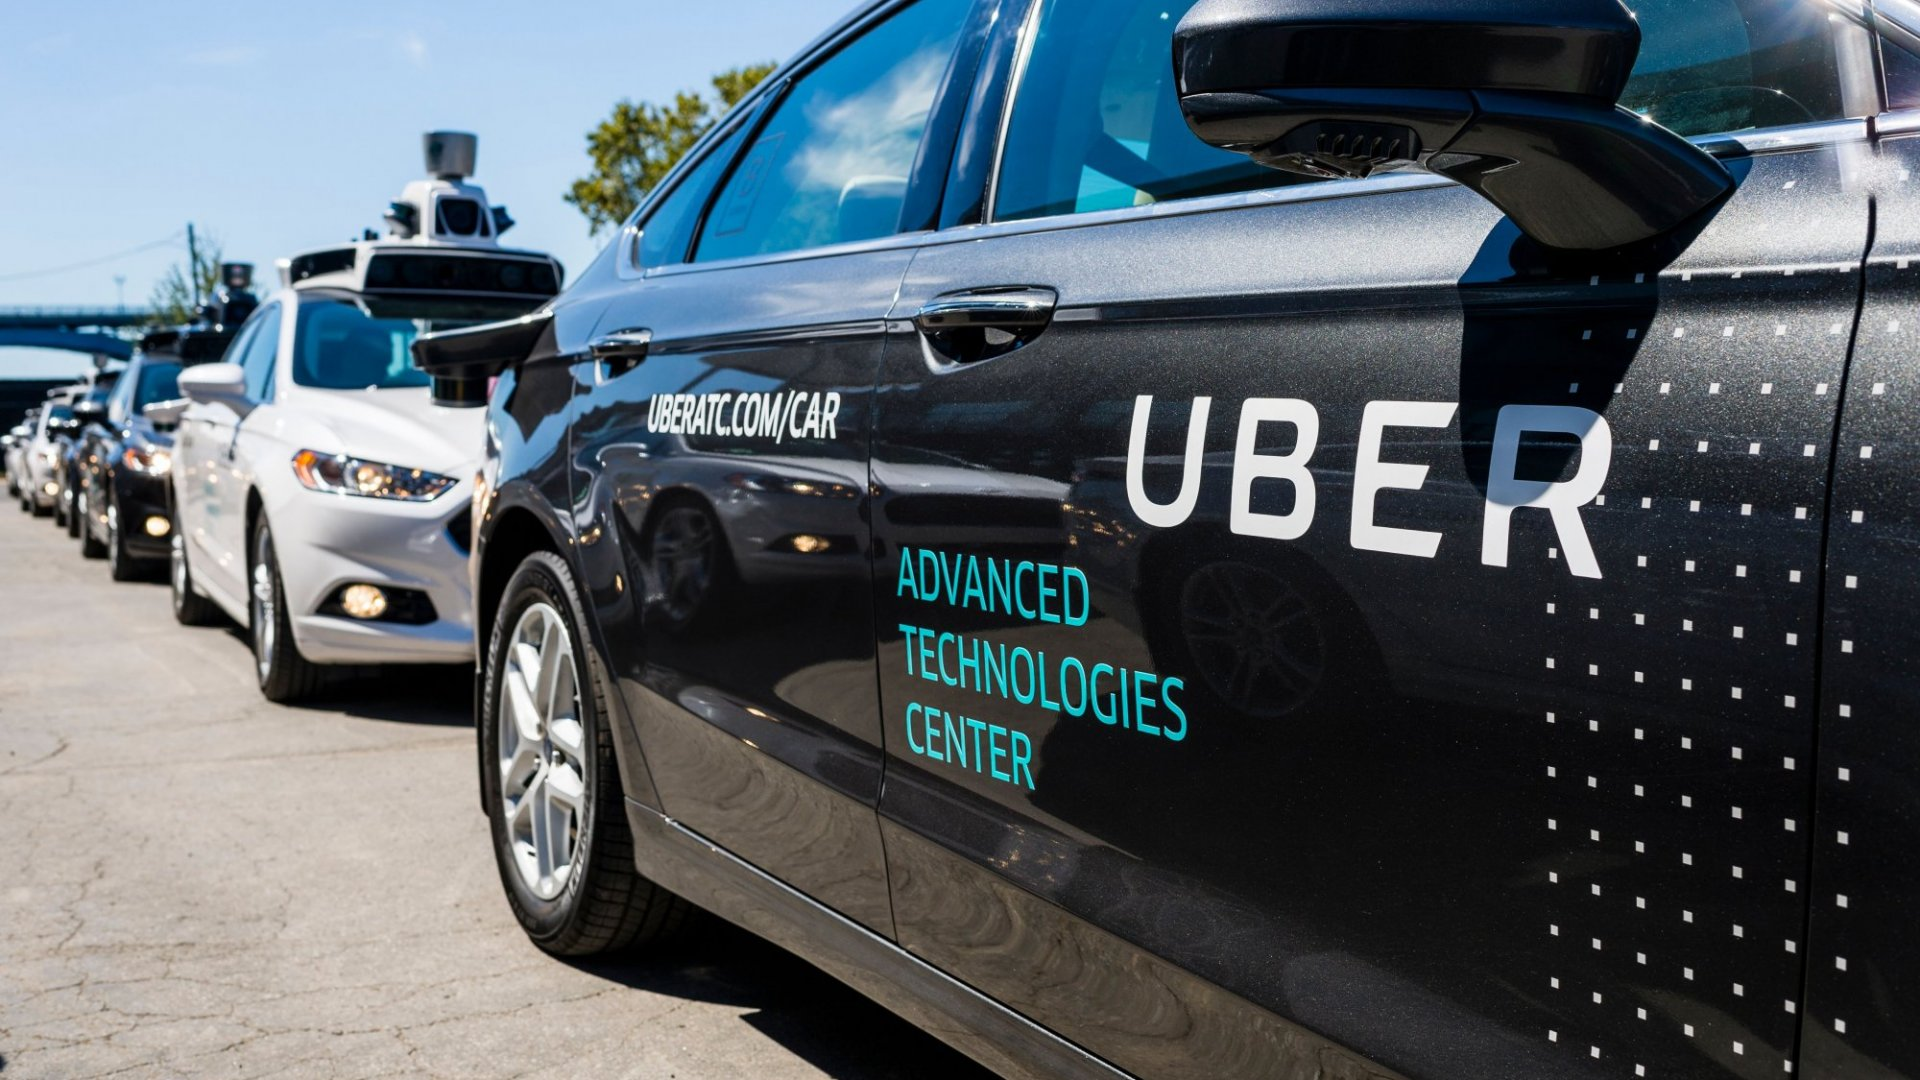 Pilot models of the Uber self-driving car on display at the Uber Advanced Technologies Center on September 13, 2016, in Pittsburgh. Uber launched a groundbreaking driverless car service, stealing ahead of Detroit auto giants and Silicon Valley rivals with technology that could revolutionize transportation.